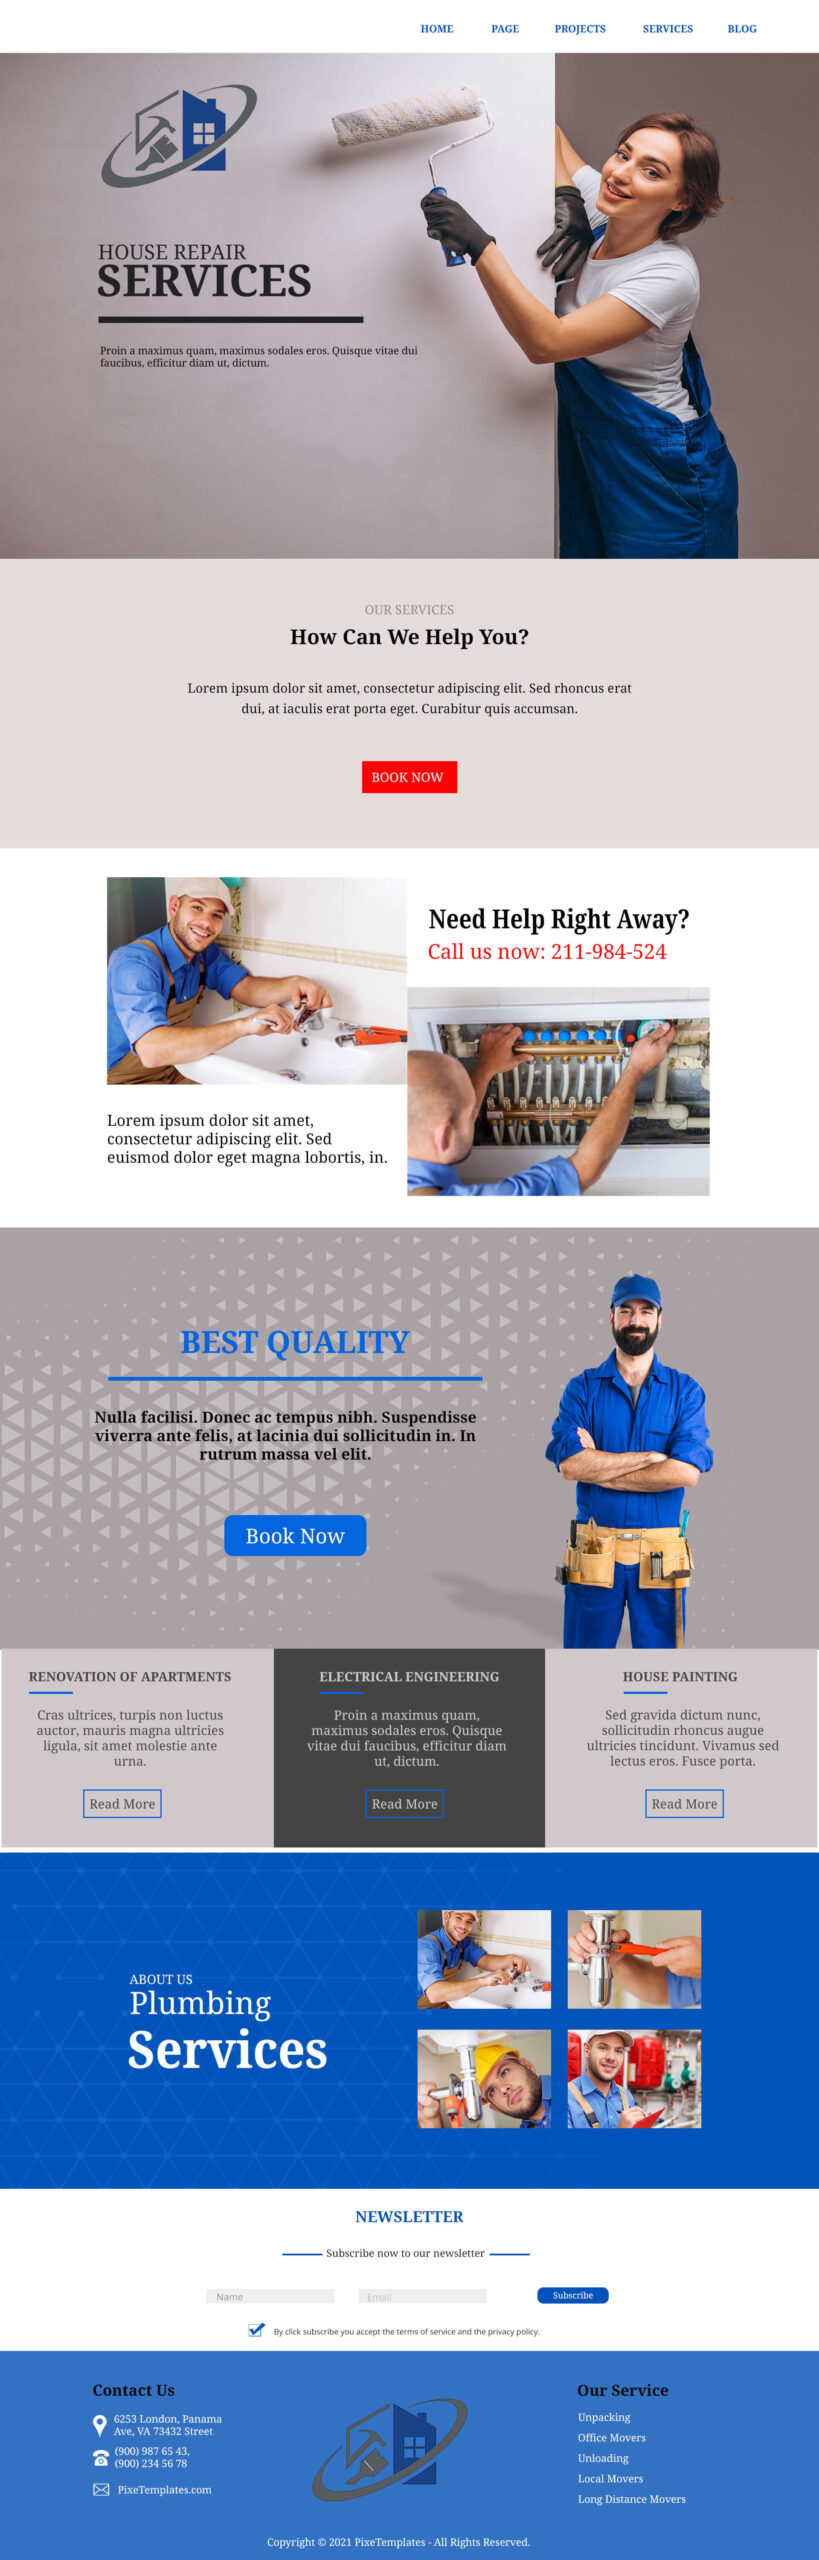 Free Website Template for House Repair Services